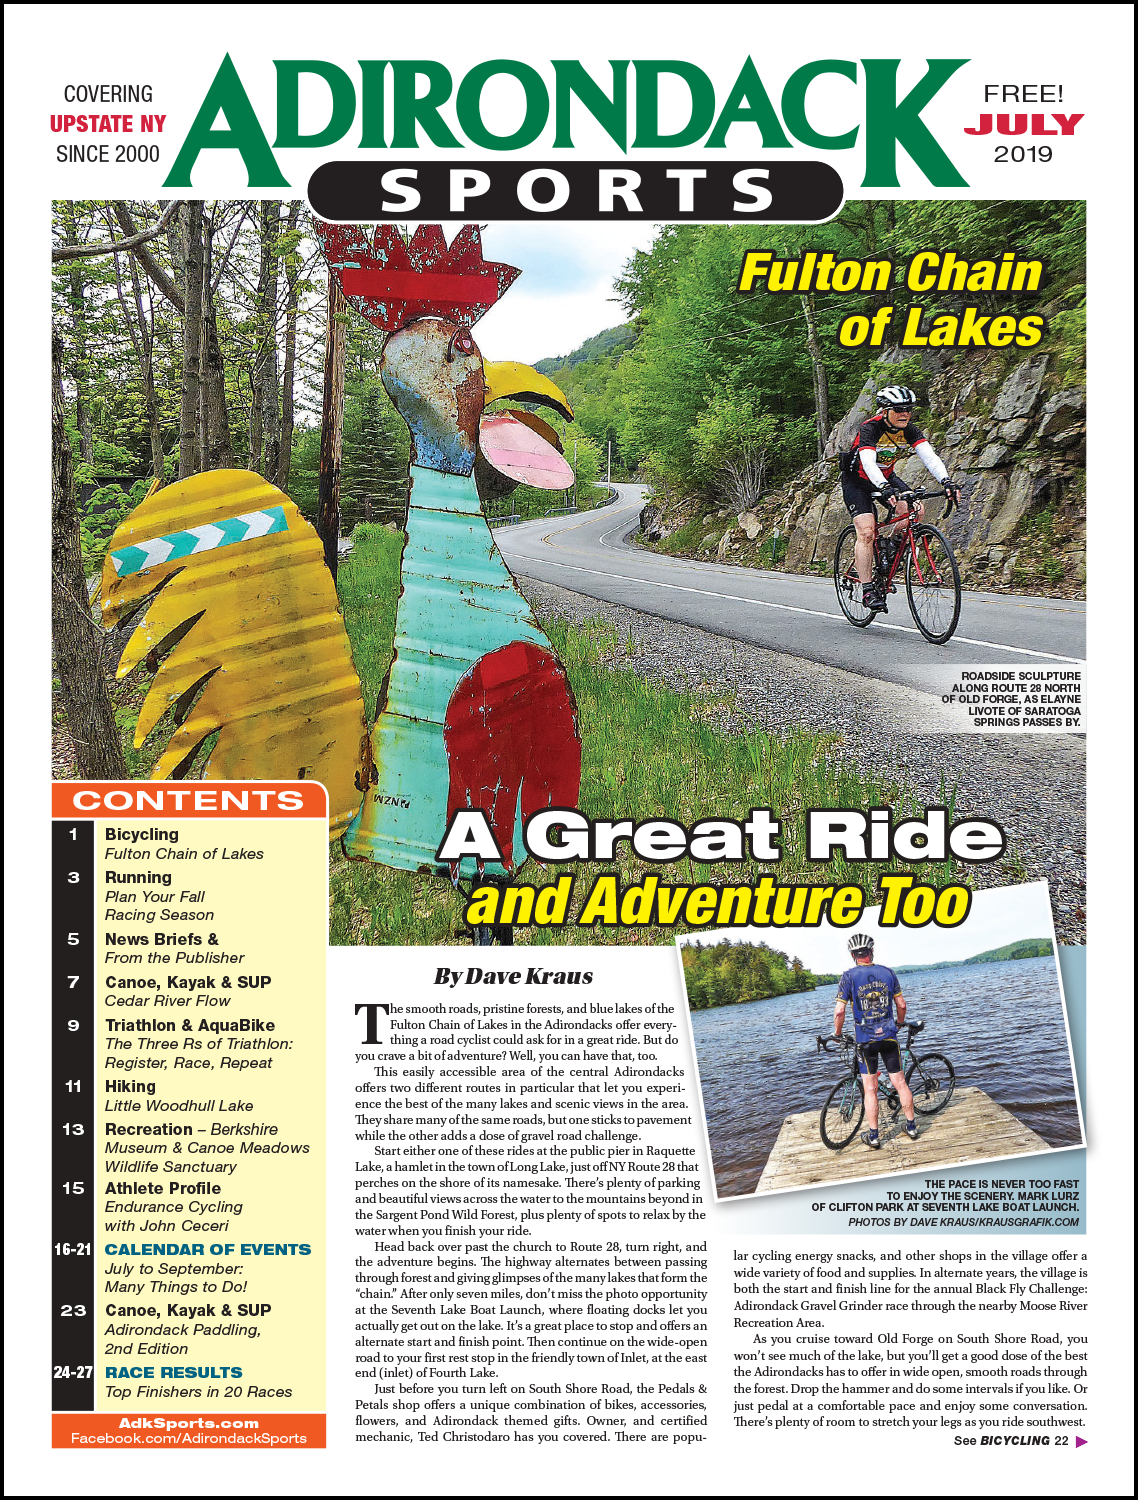 July 2019 - READ ARTICLES / VIEW PDF